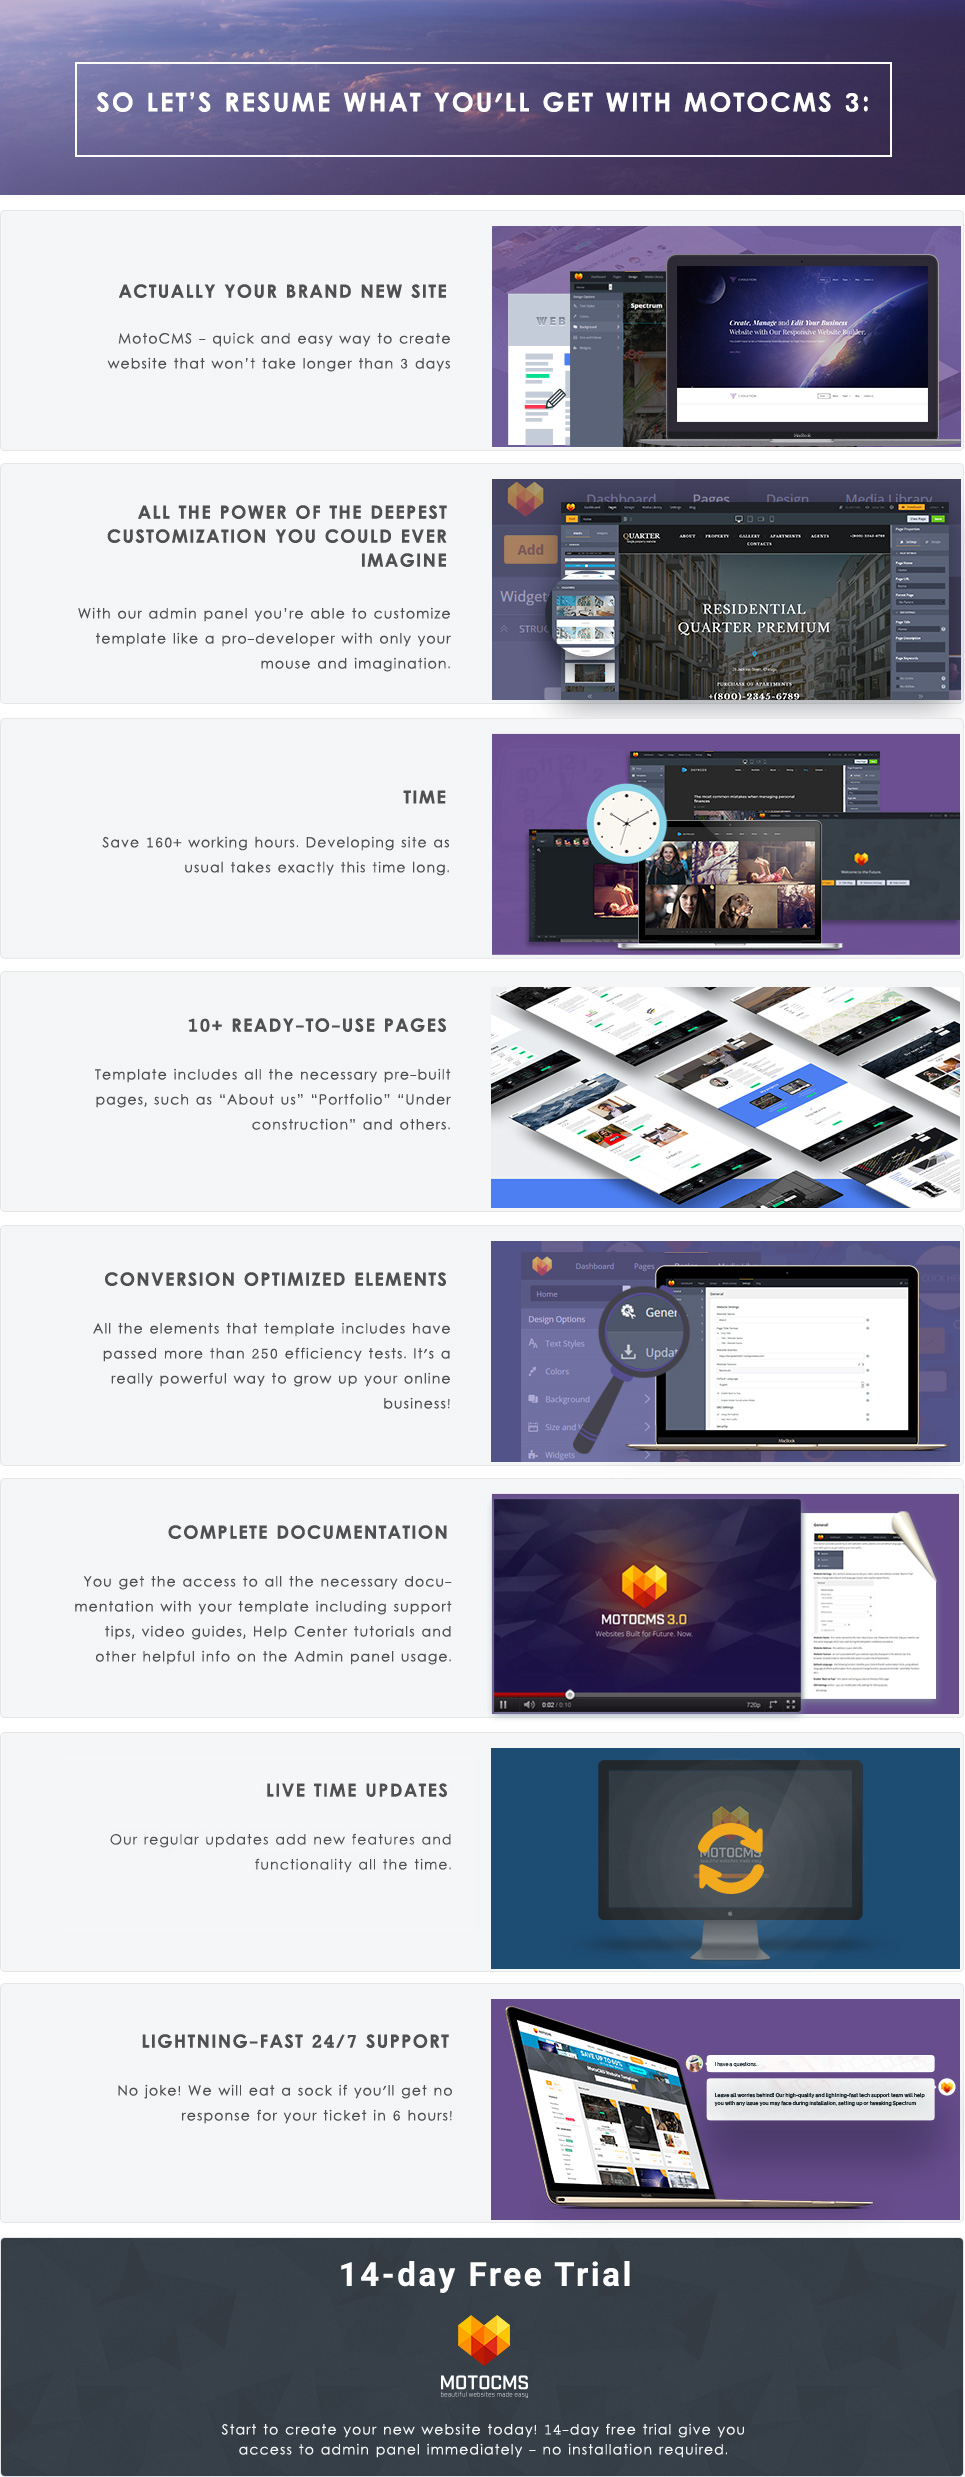 Fast Food Restaurant Moto CMS 3 Template